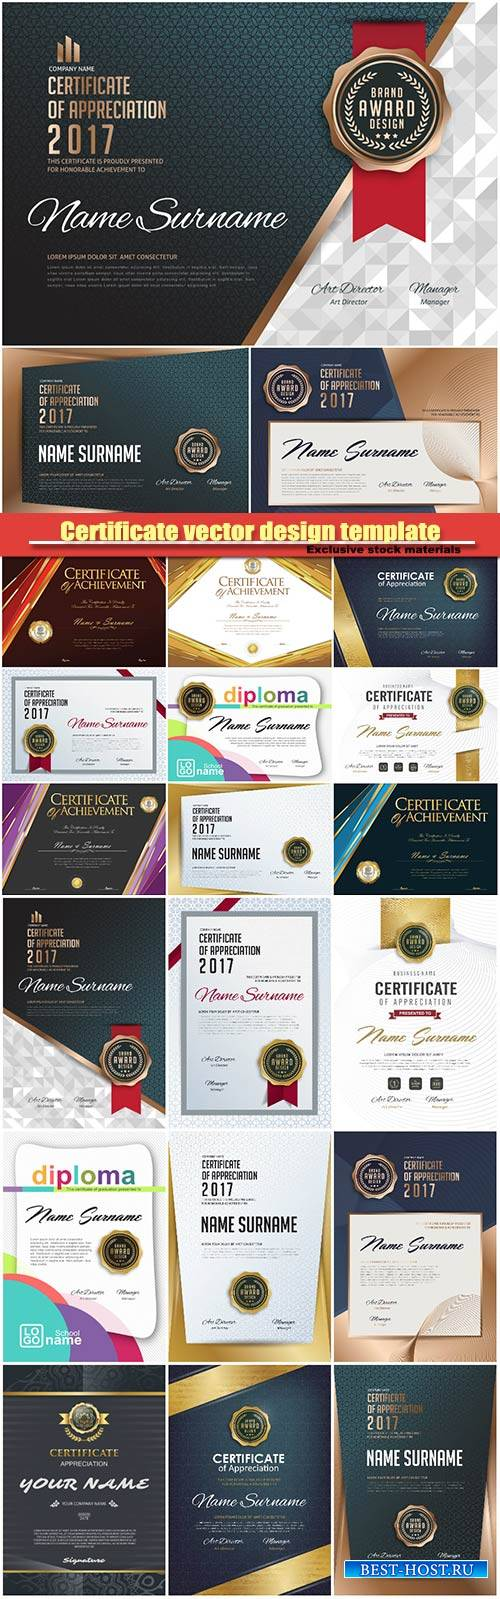 Certificate vector design stylish template